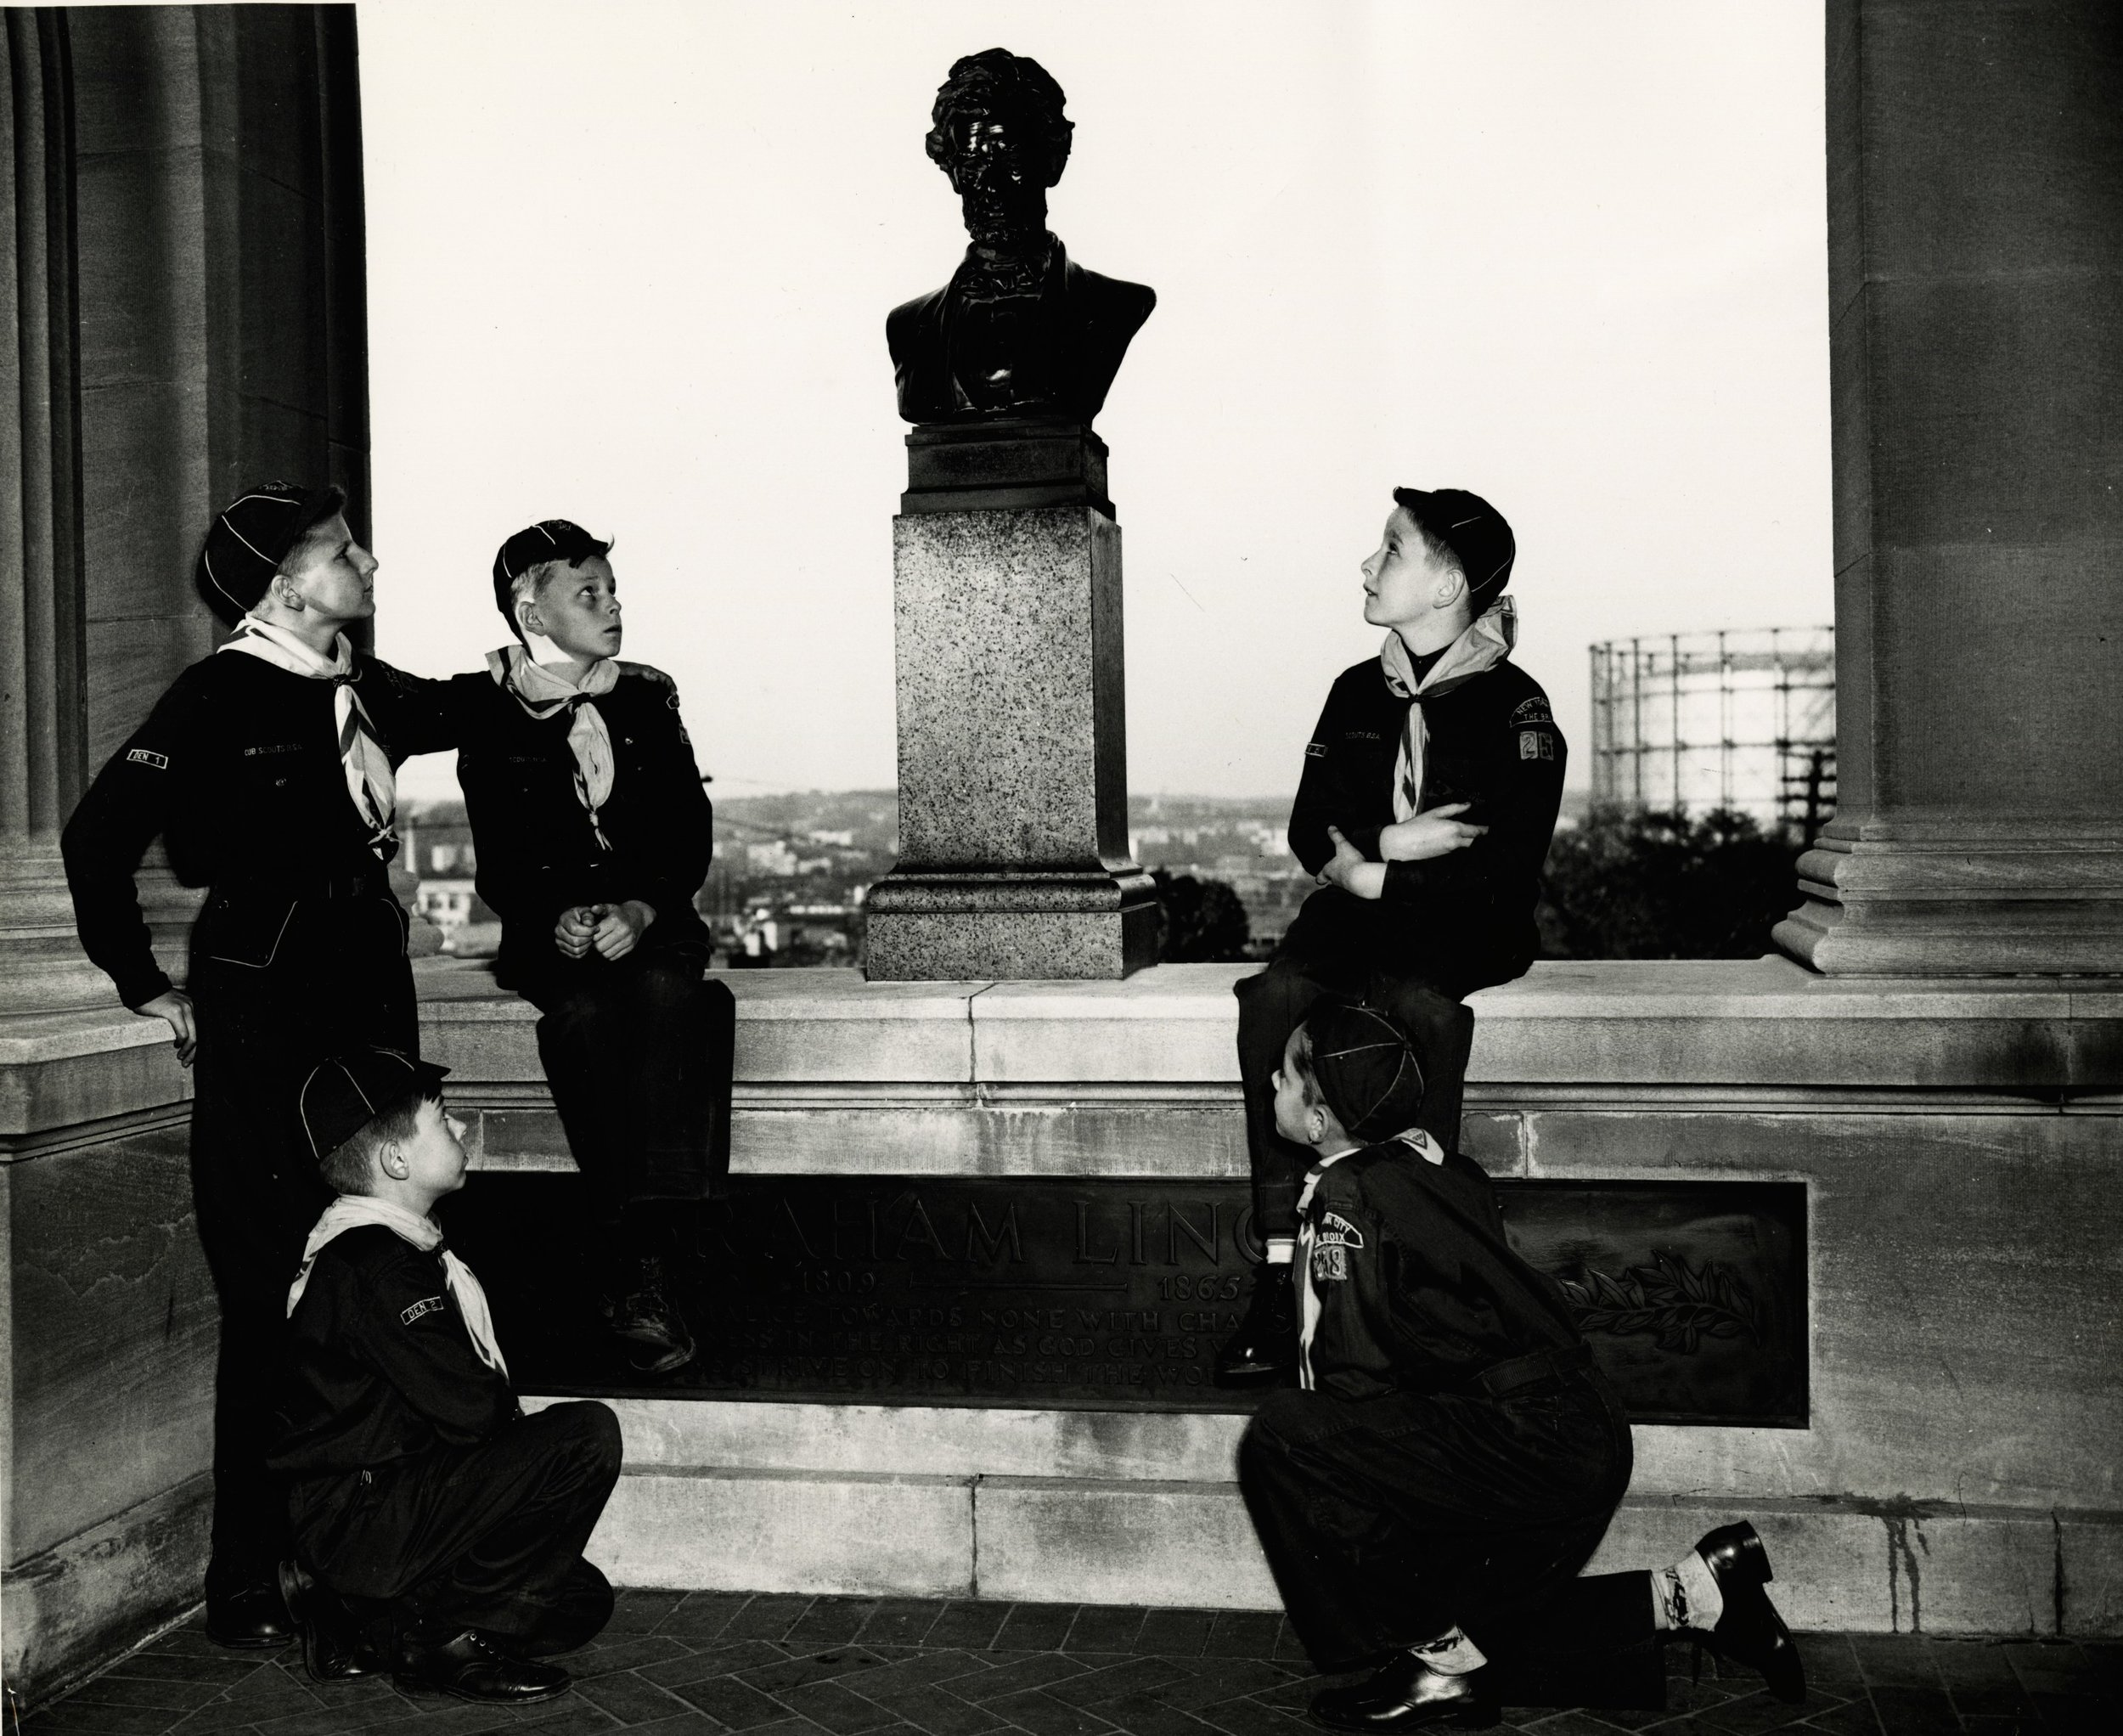 Boy scouts admire the bust of Abraham Lincoln in an undated photograph.